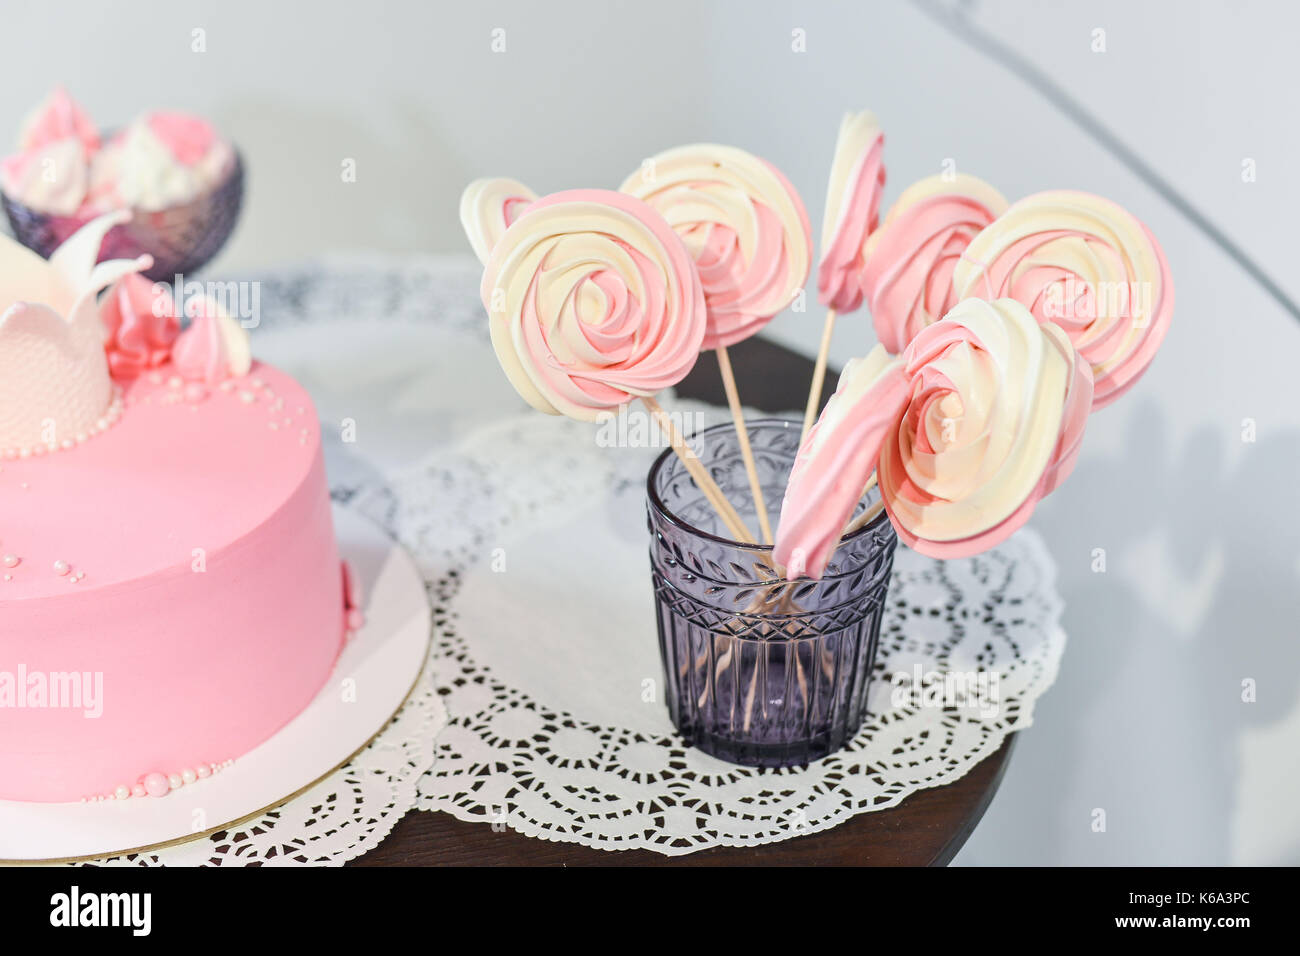 wedding cake for guests at a wedding party from the berries - Stock Image